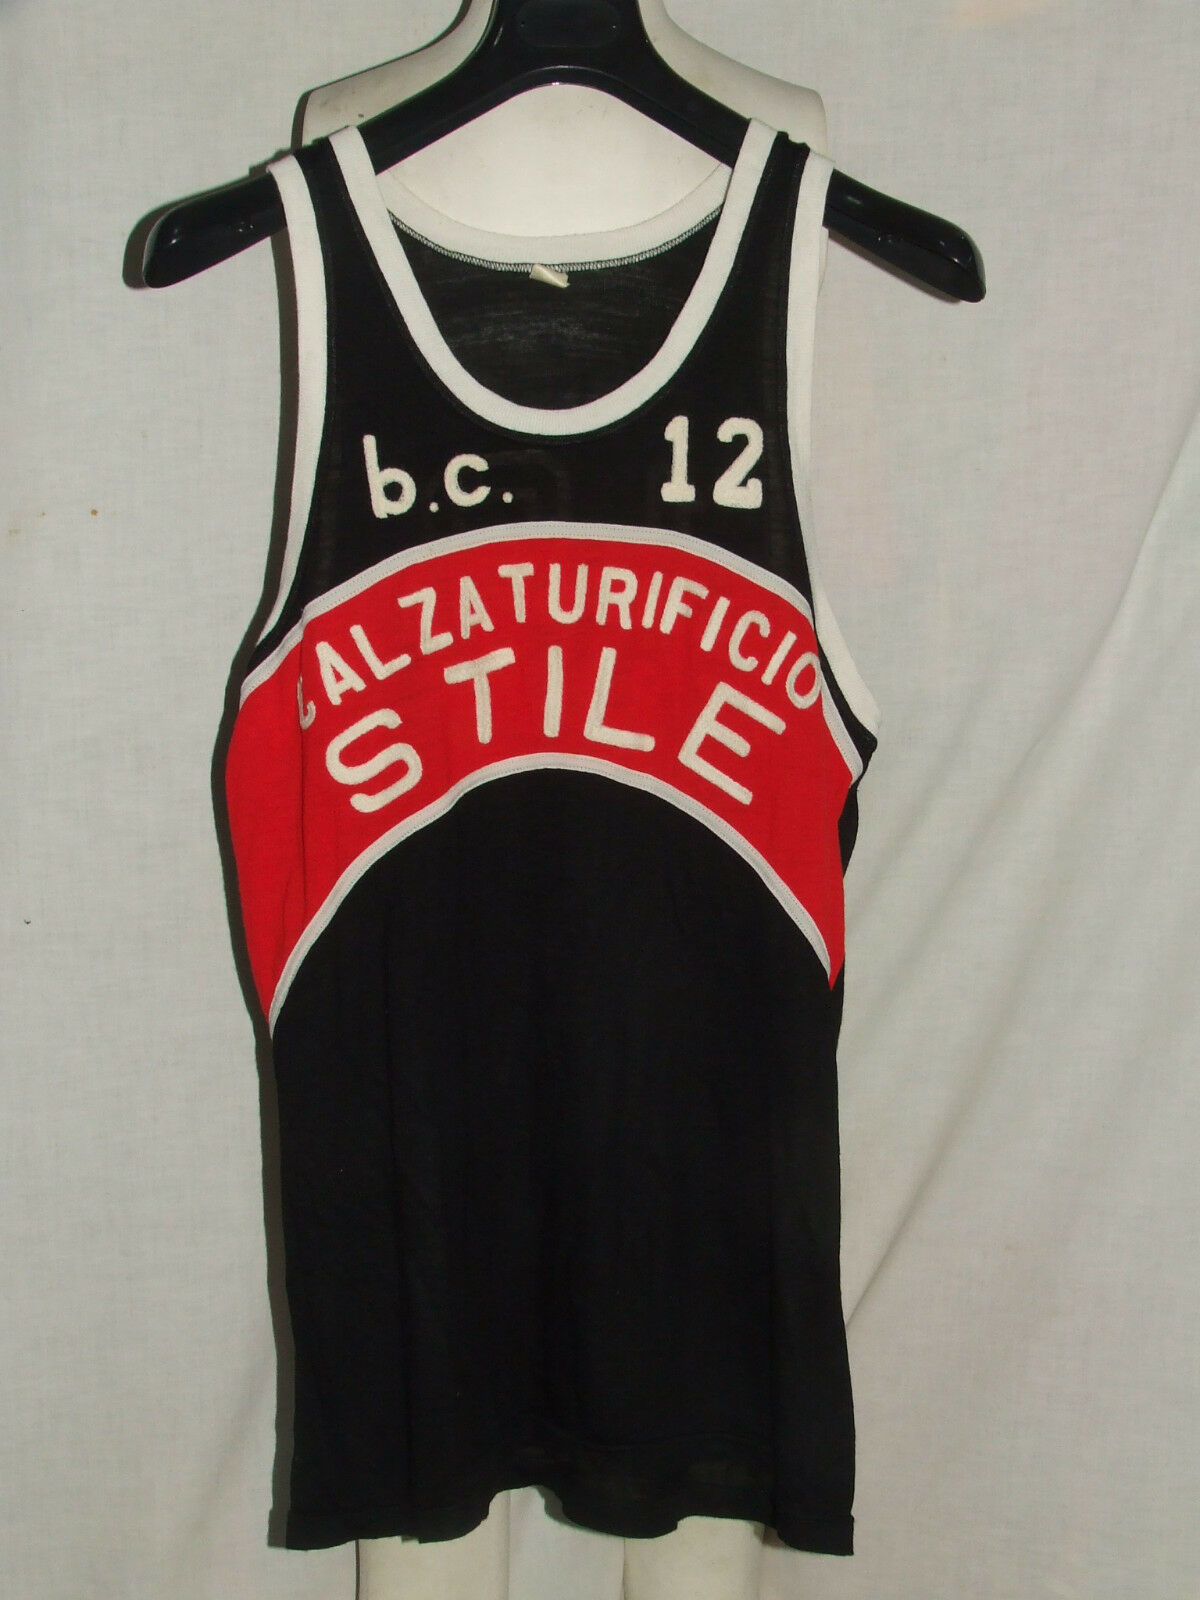 SHIRT MAILLOT TANK TOP BASKETBALL MATCH WORN ABC CASTELFIORENTINO n °12 80'S